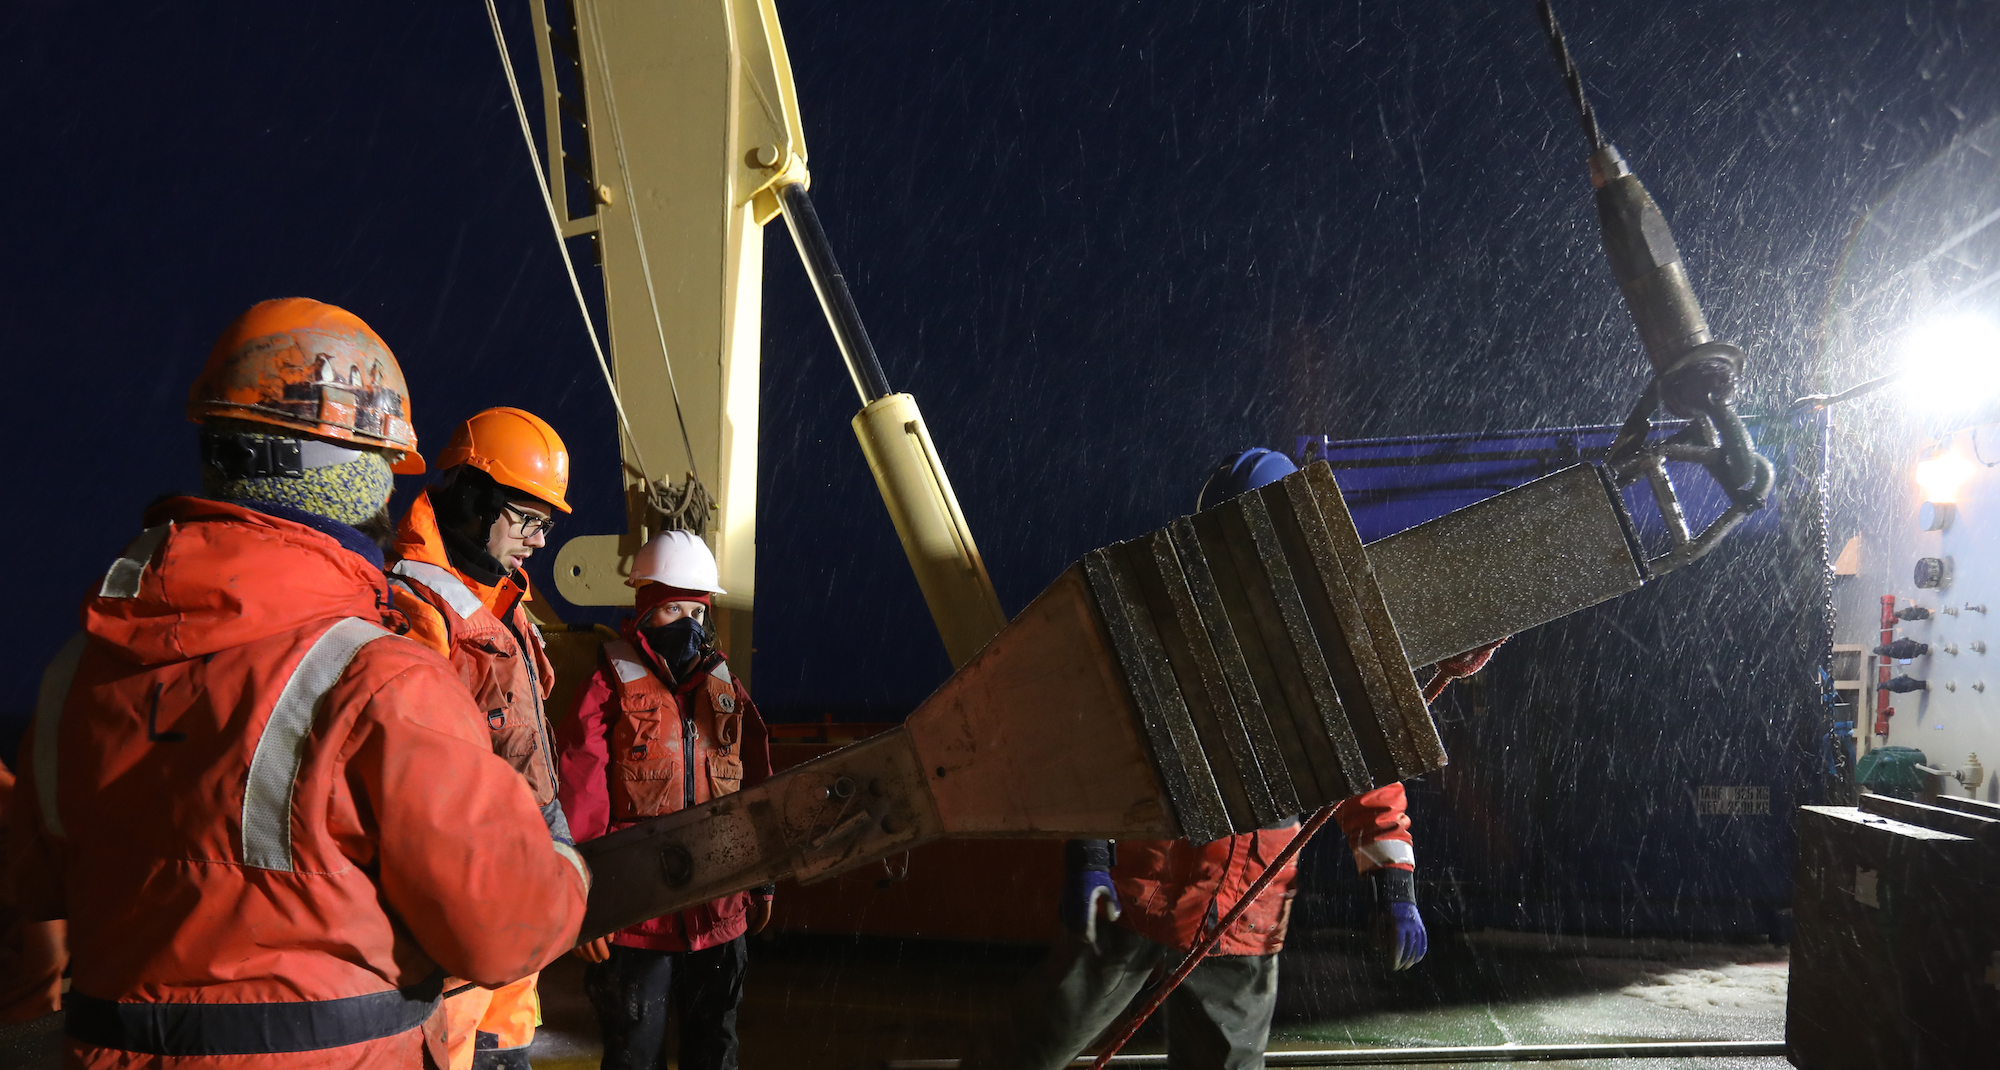 Night coring using the Kasten corer. The wire holds the top of the corer at an angle to allow the THOR team to put spacers into the top of the core. Just below where the wire is connected to the top of corer are the weights that help force the barrel down into the sea floor.